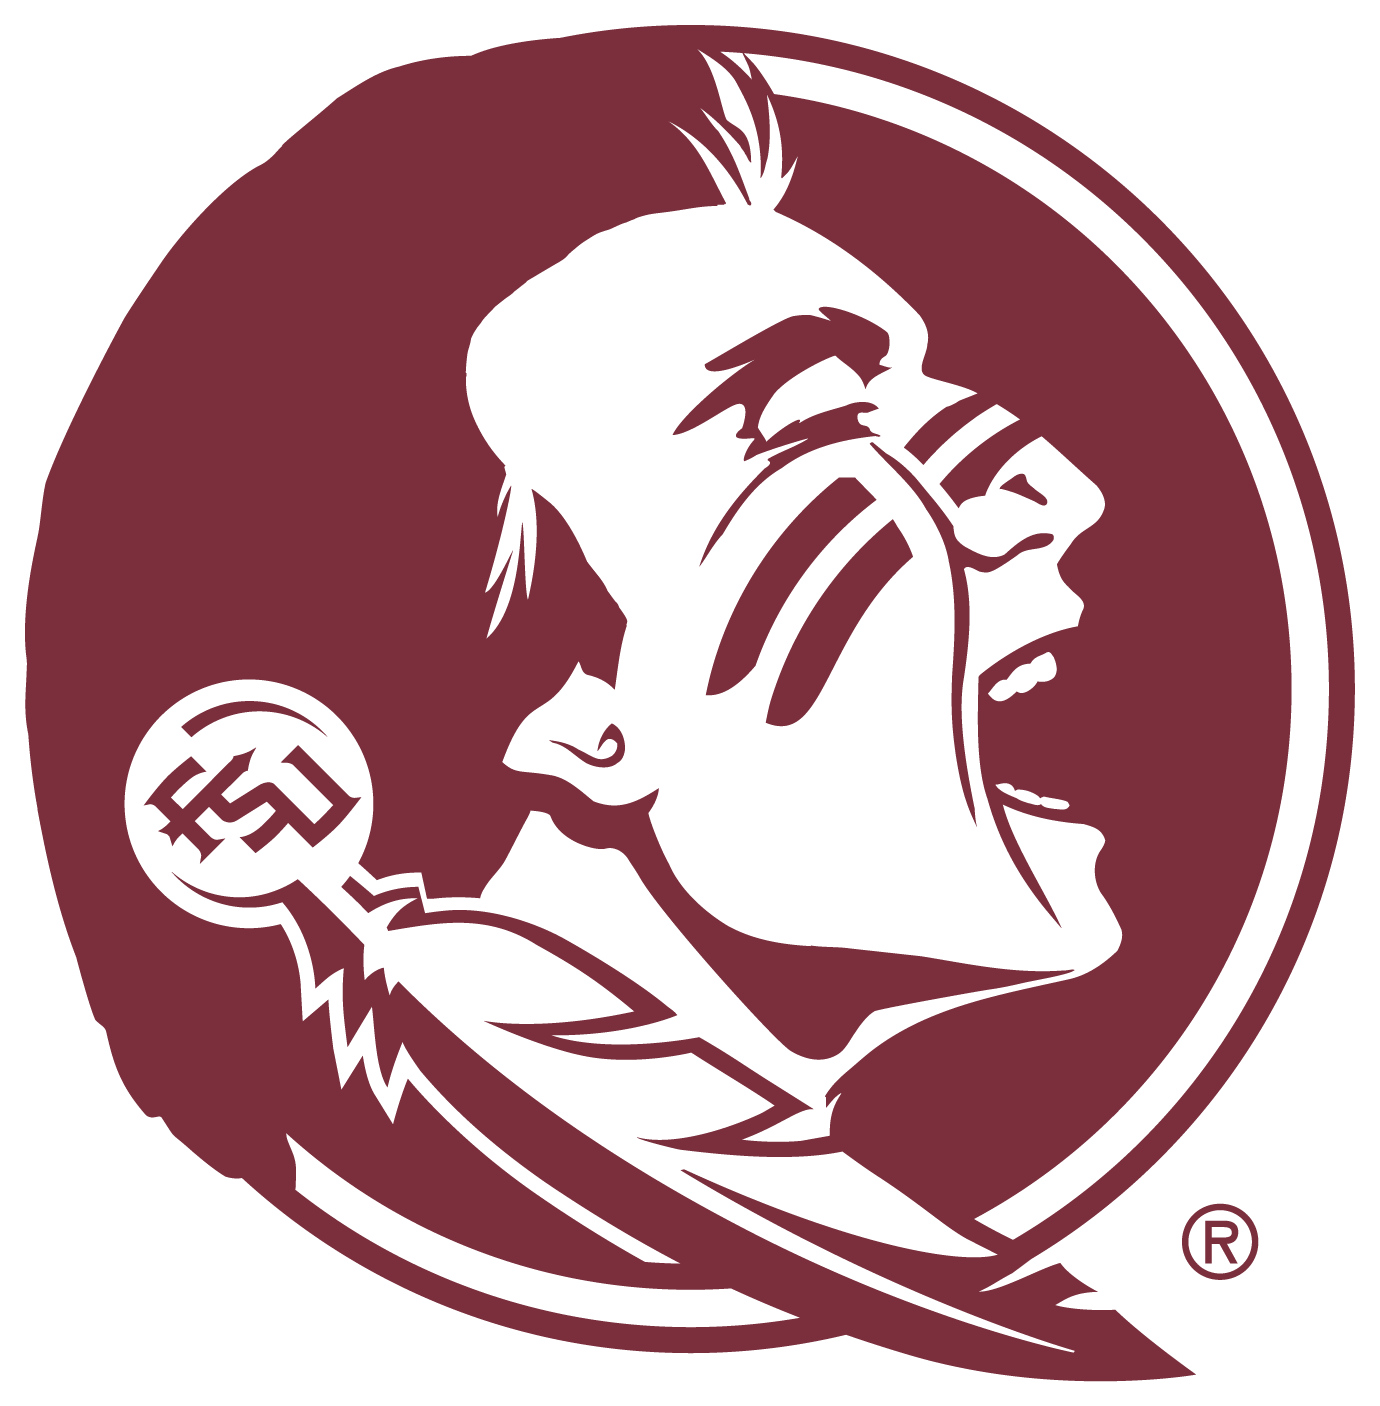 Fsu seminole logo clipart clipart images gallery for free.